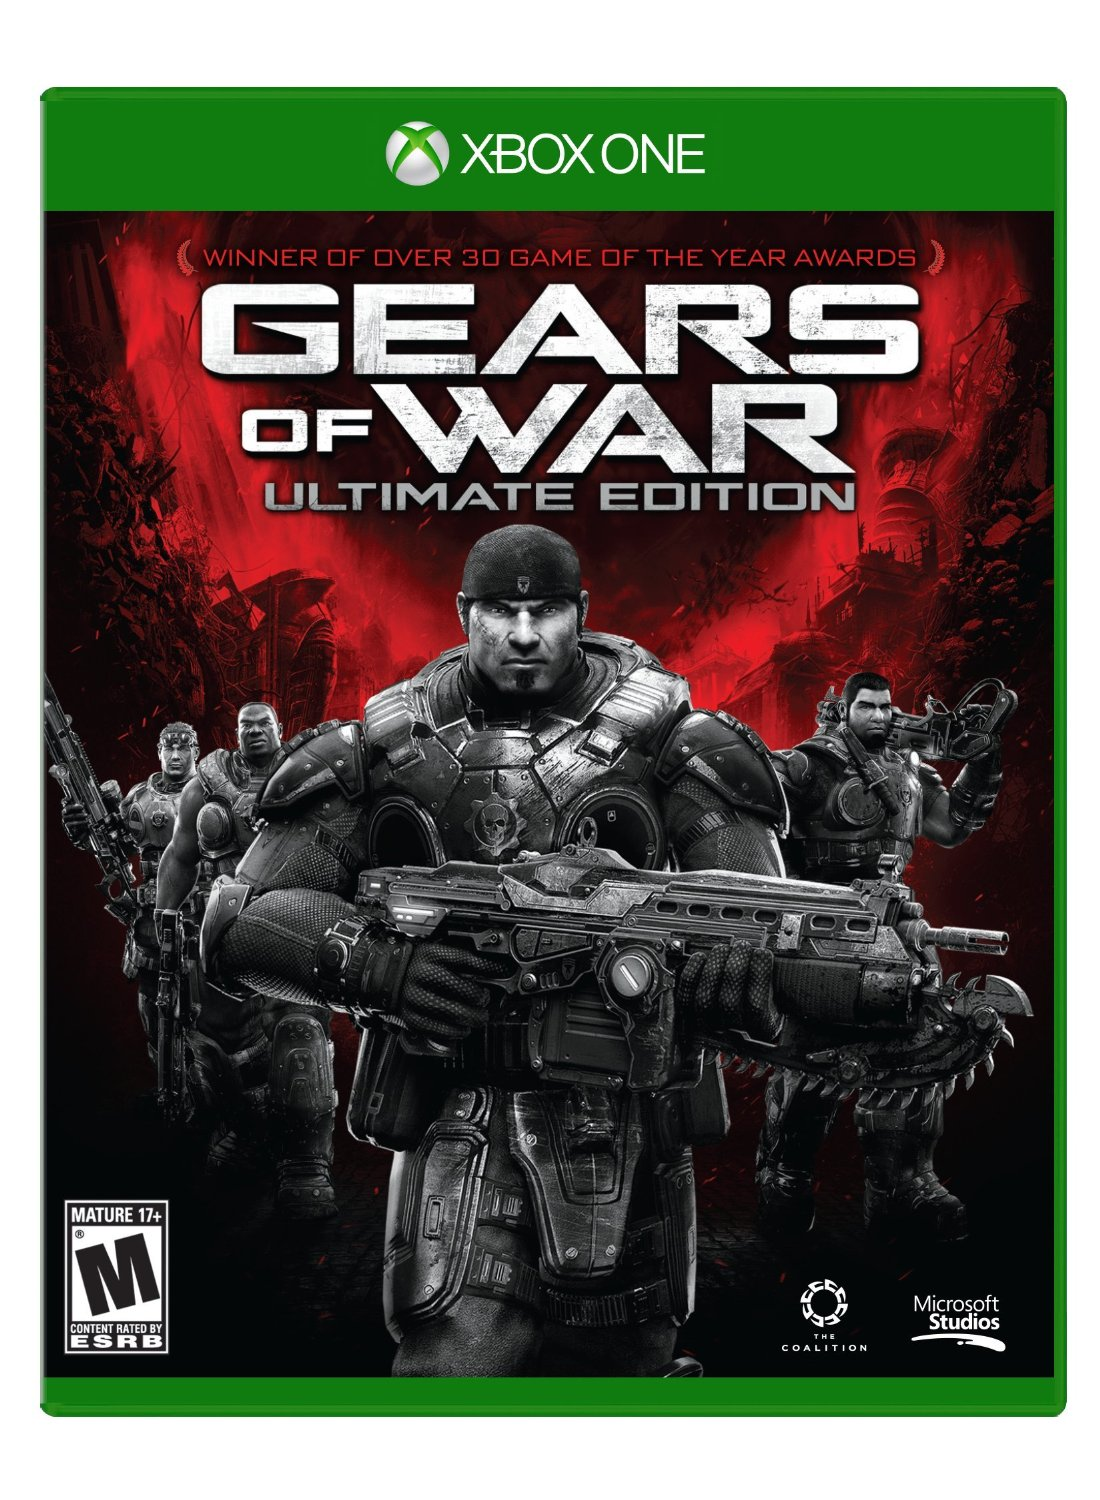 GOW box art